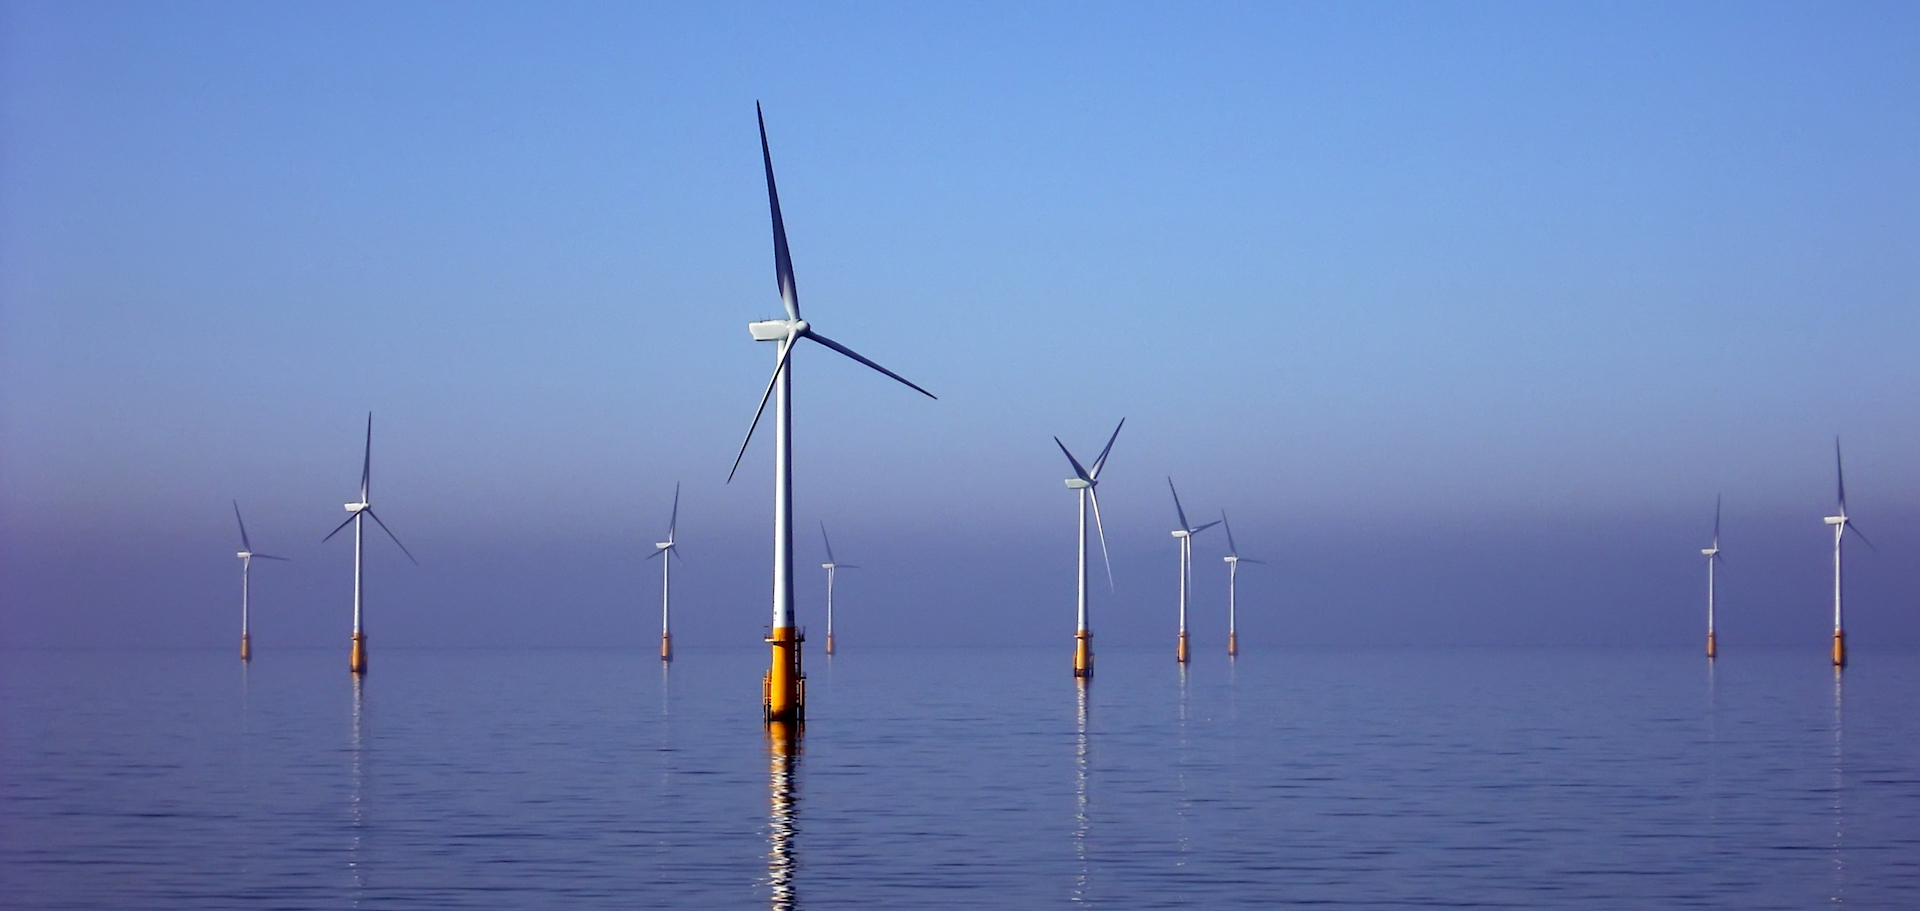 view of offshore wind farm in the irish sea with turbines reflected in the water